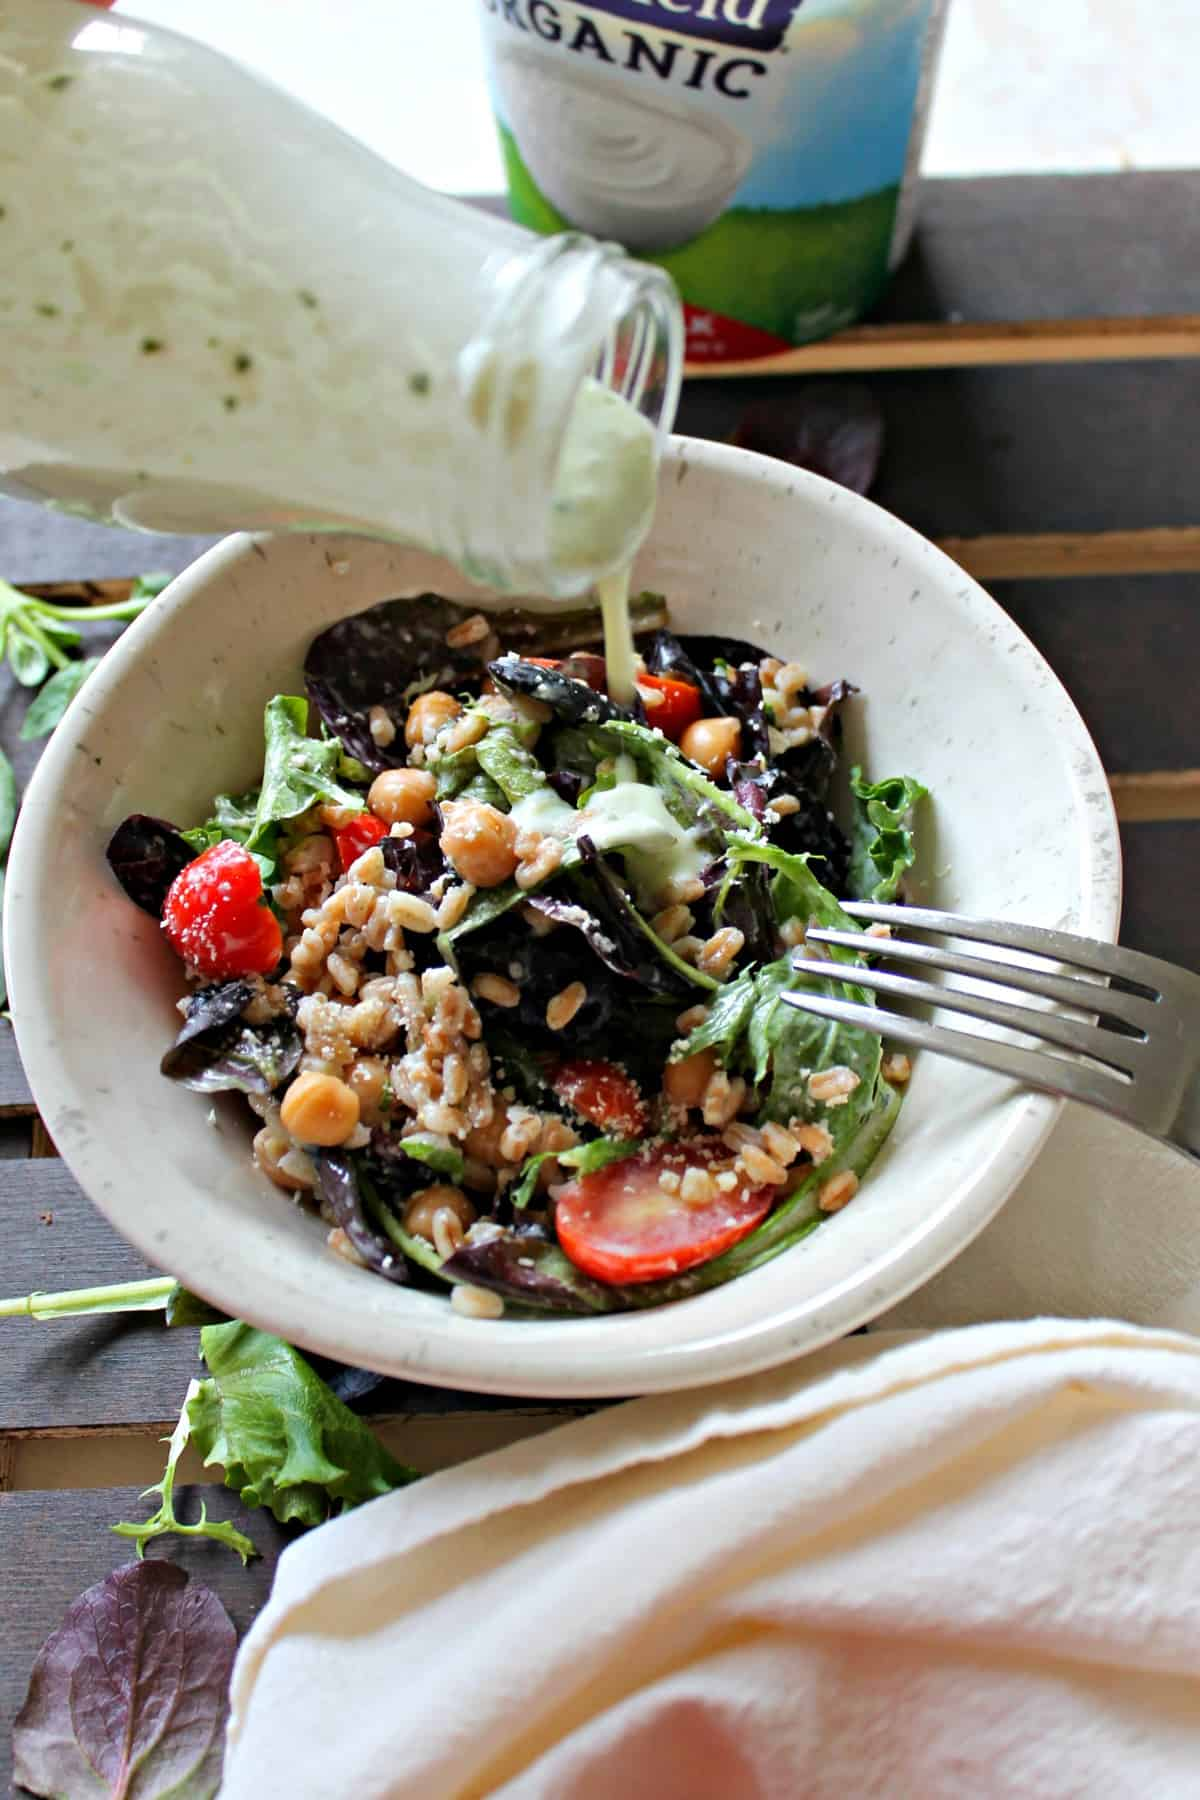 Farro & Mixed Greens Salad with Creamy Basil Parmesan Dressing is edible proof that salads don't have to be boring! Filled with satisfying ingredients like farro and chickpeas, and drizzled with a tangy yogurt-based dressing, this salad has staying power AND flavor!